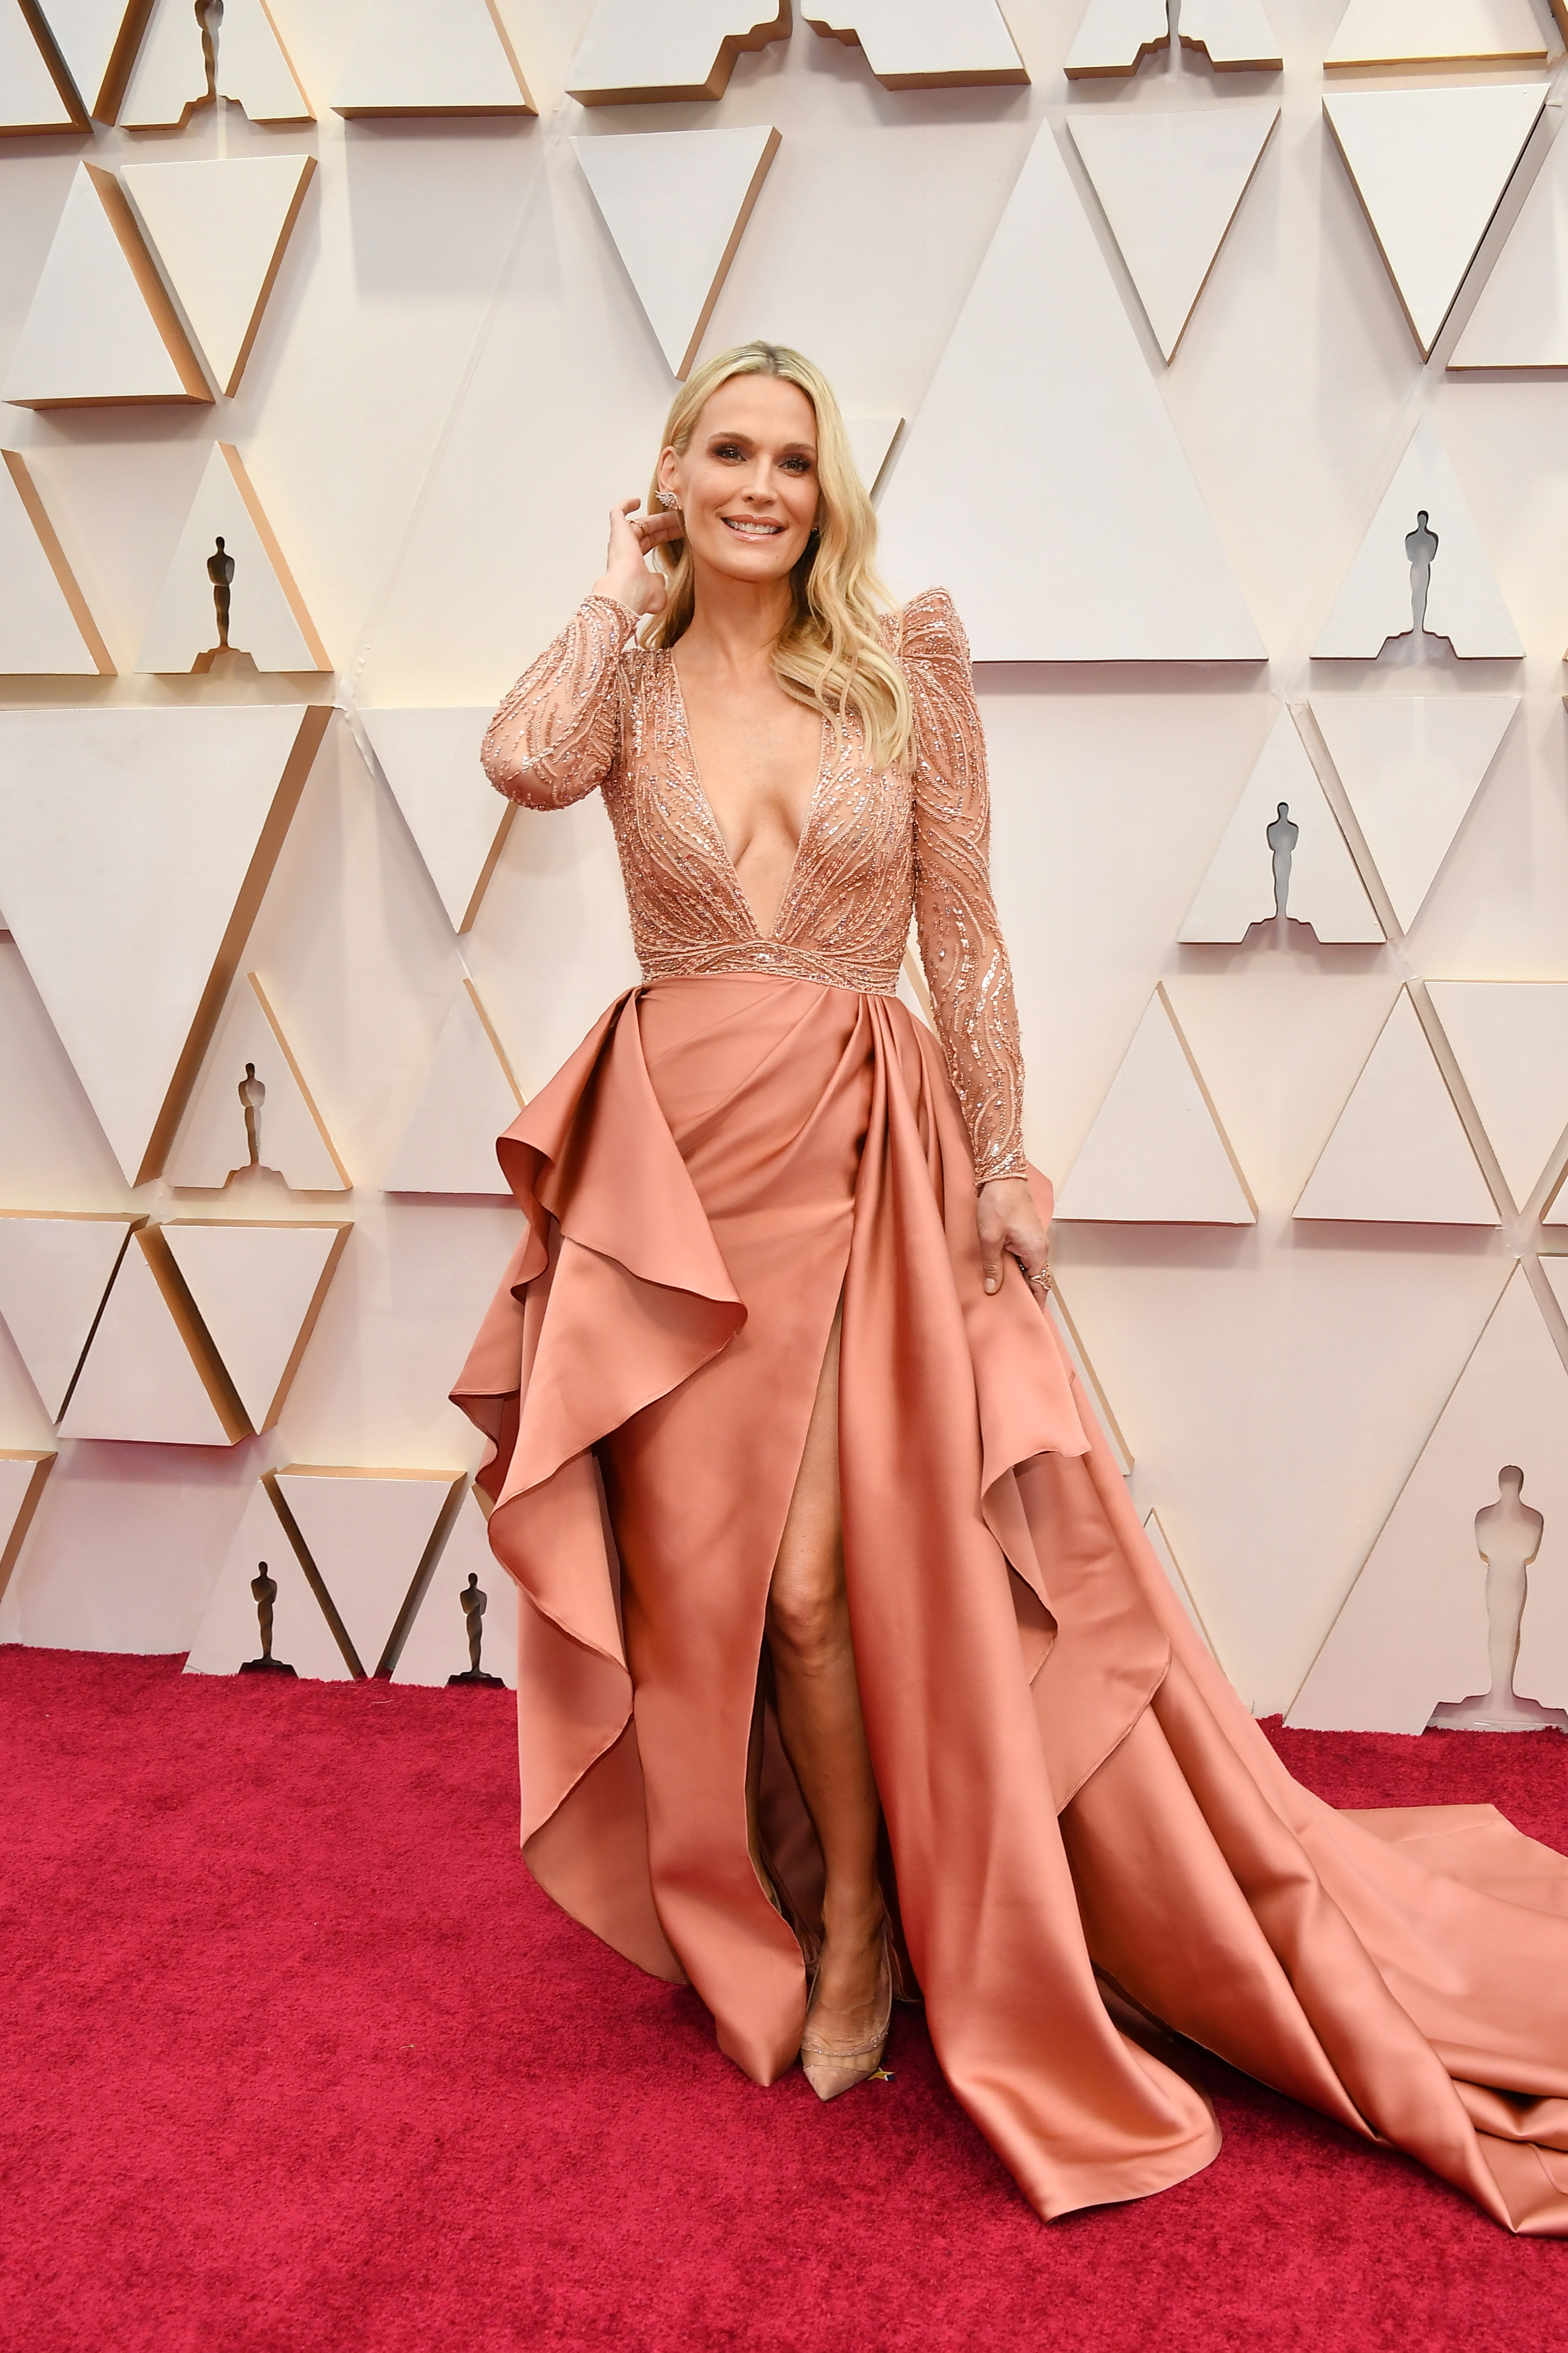 HOLLYWOOD, CALIFORNIA - FEBRUARY 09: Molly Sims attends the 92nd Annual Academy Awards at Hollywood and Highland on February 09, 2020 in Hollywood, California. (Photo by Amy Sussman/Getty Images)